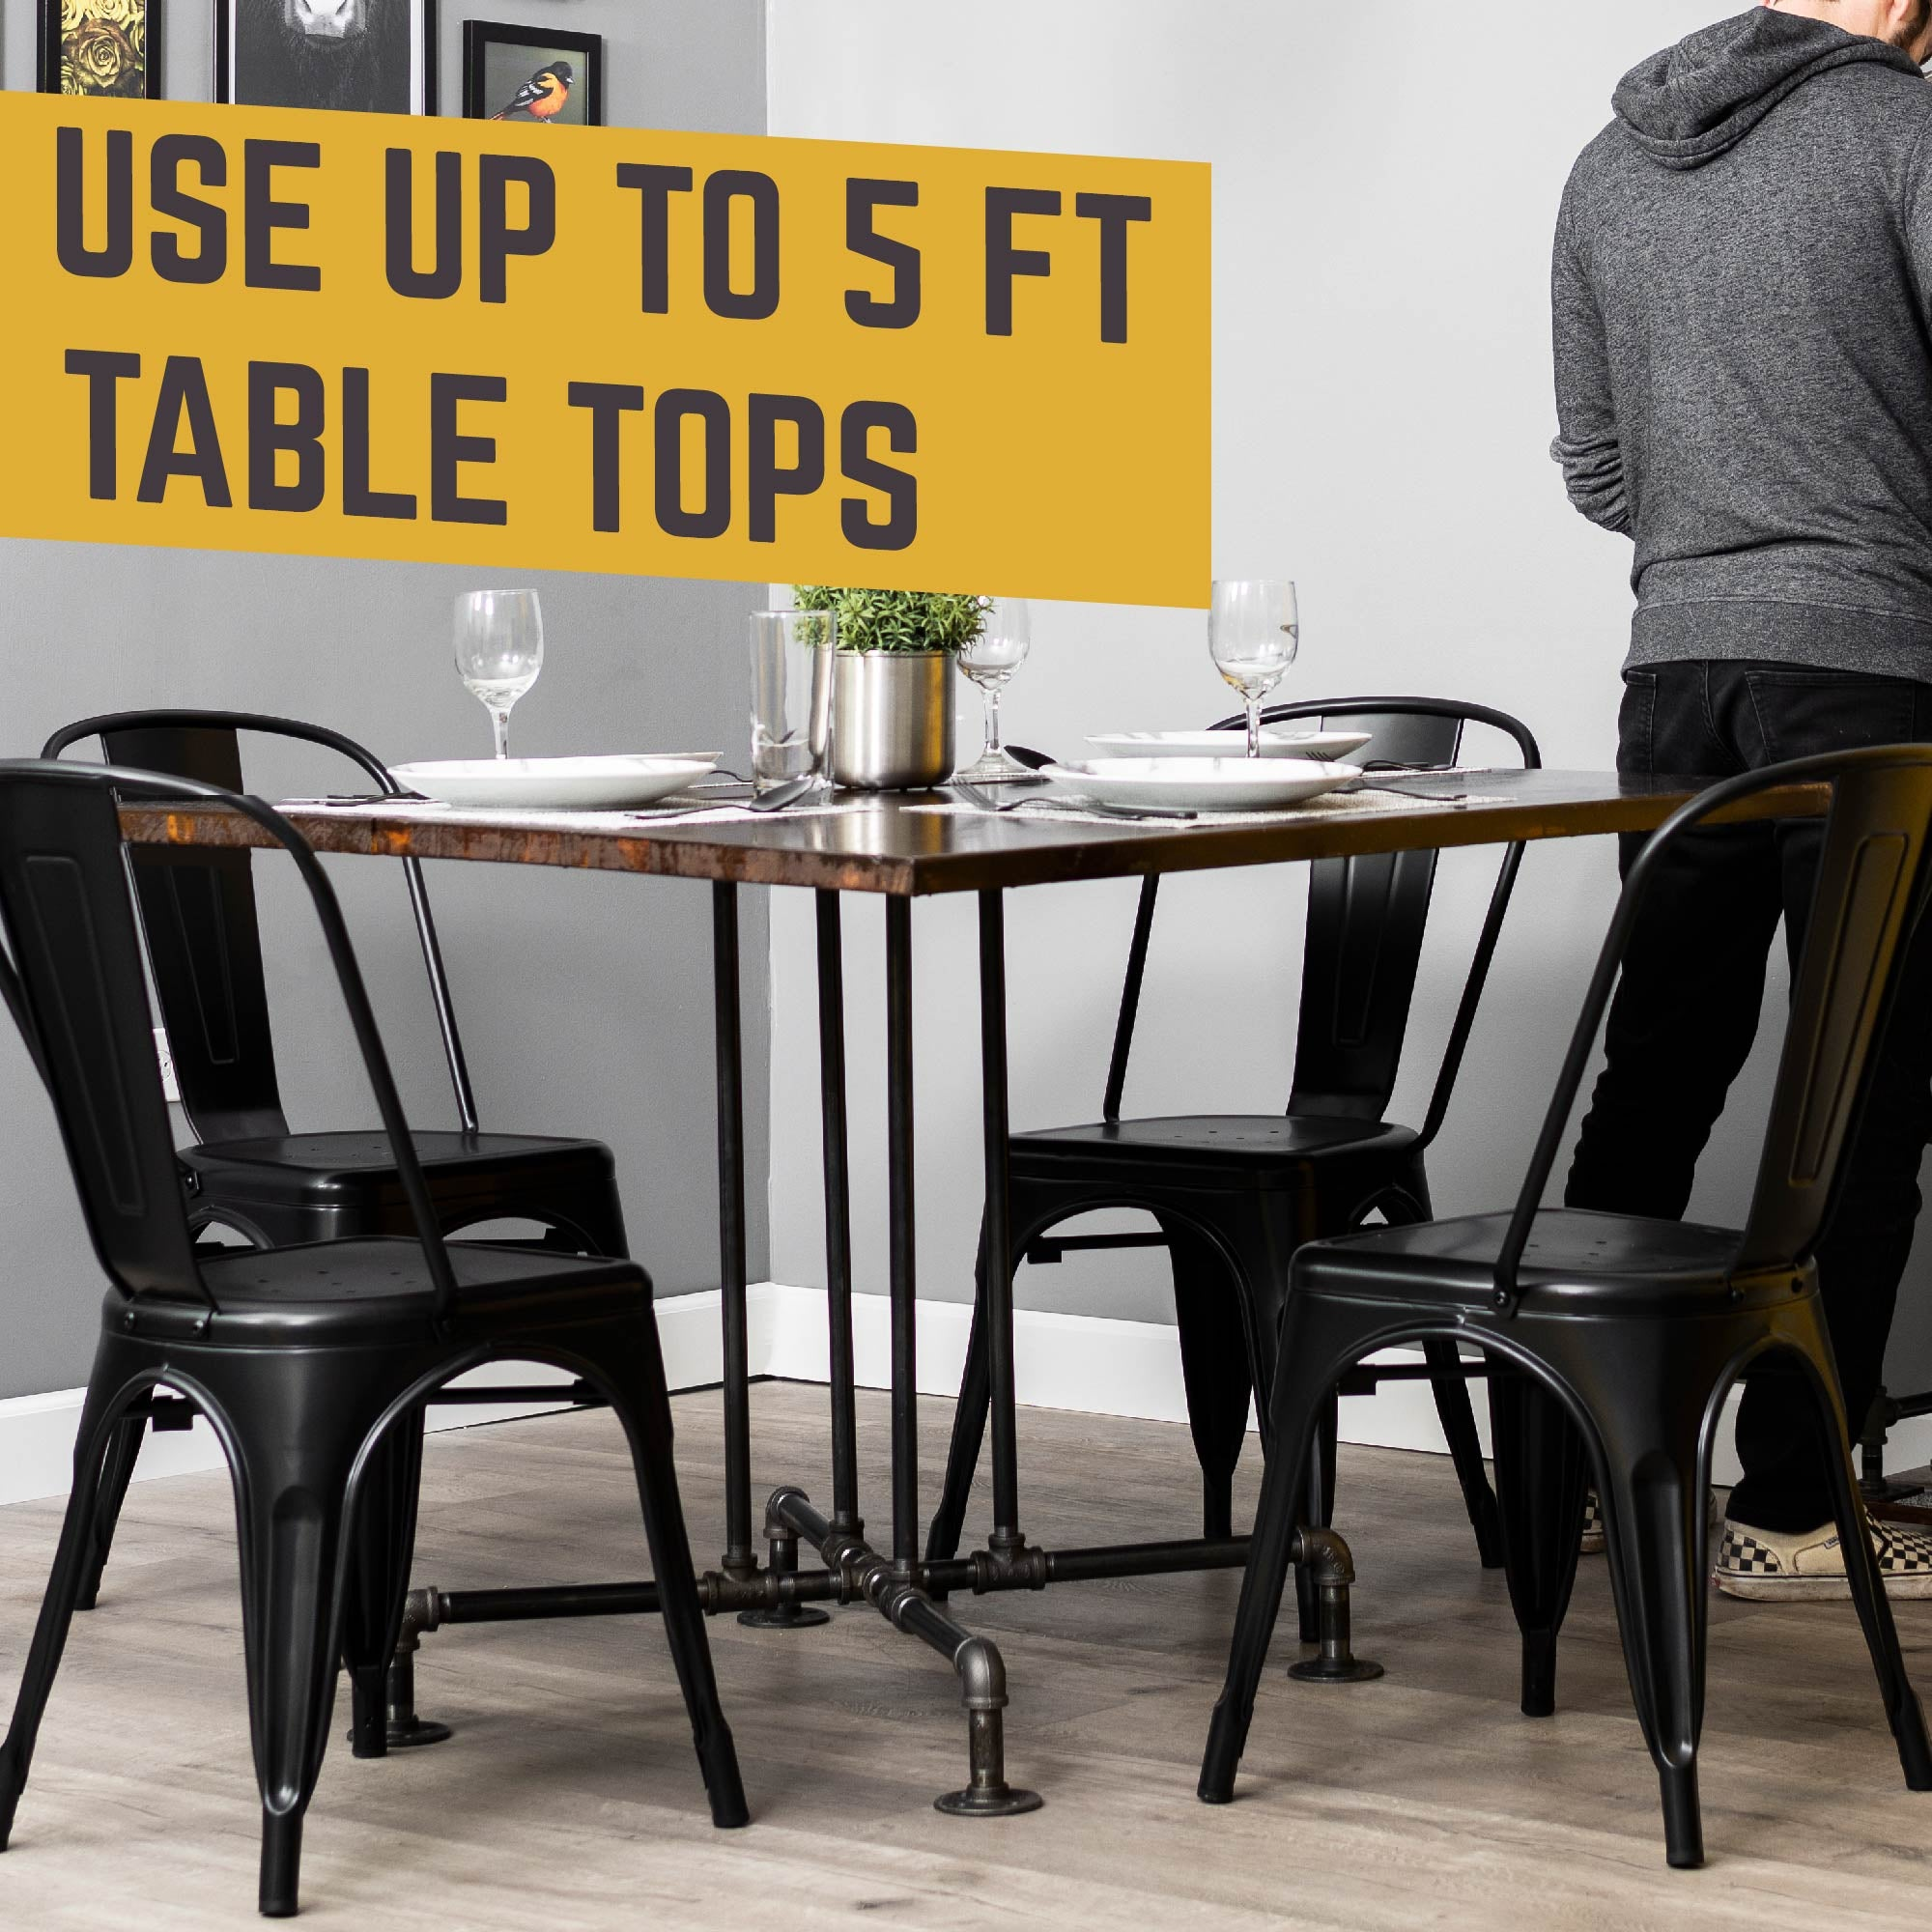 Blackjack Kitchen Table By PIPE DECOR - Pipe Decor